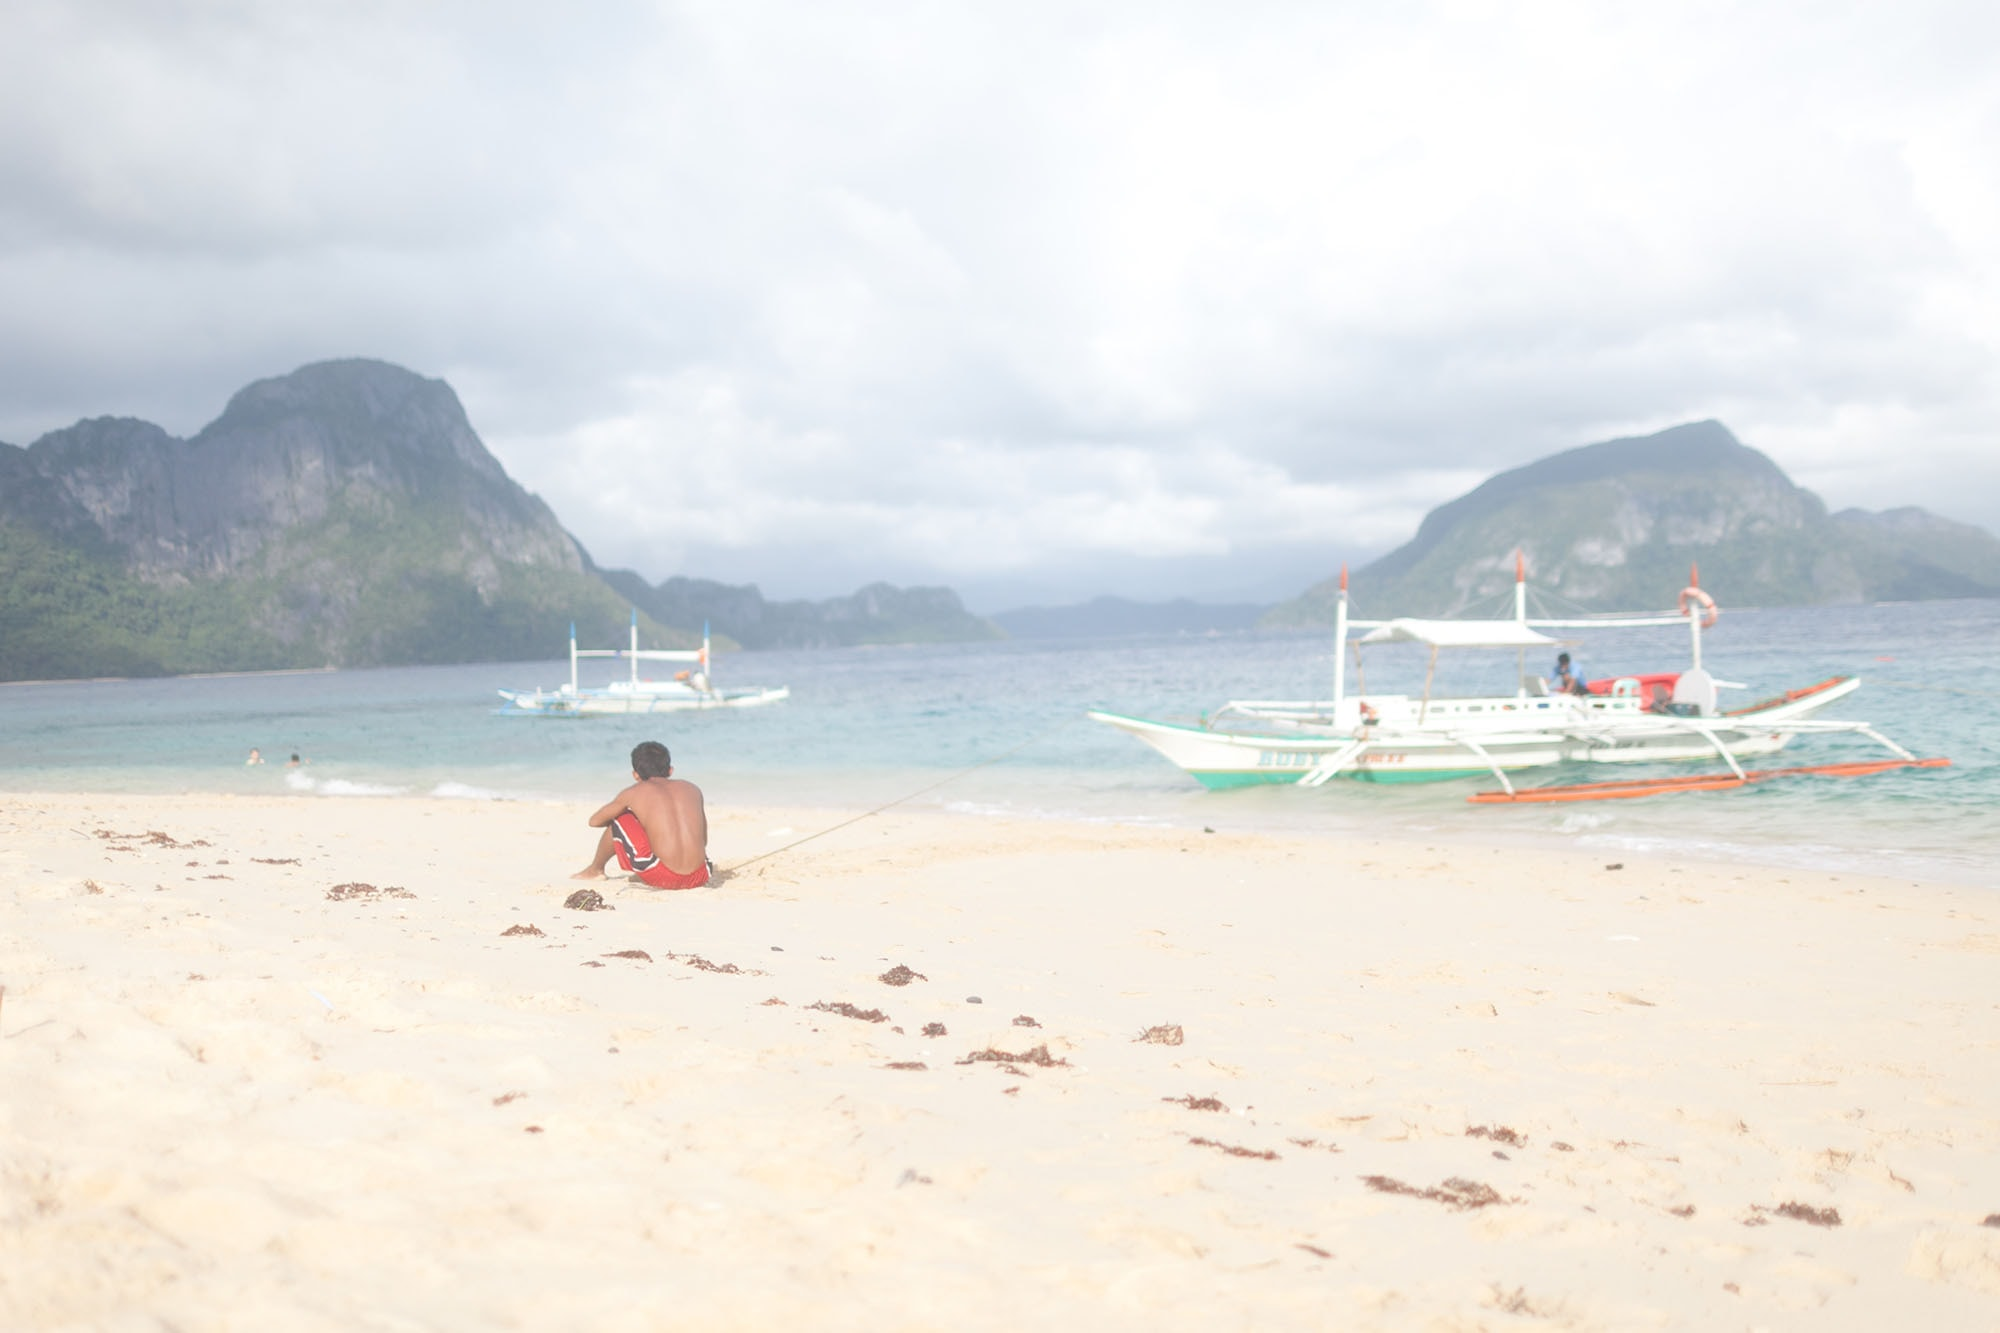 Palawan Island hopping tour C in El Nido, Philippines